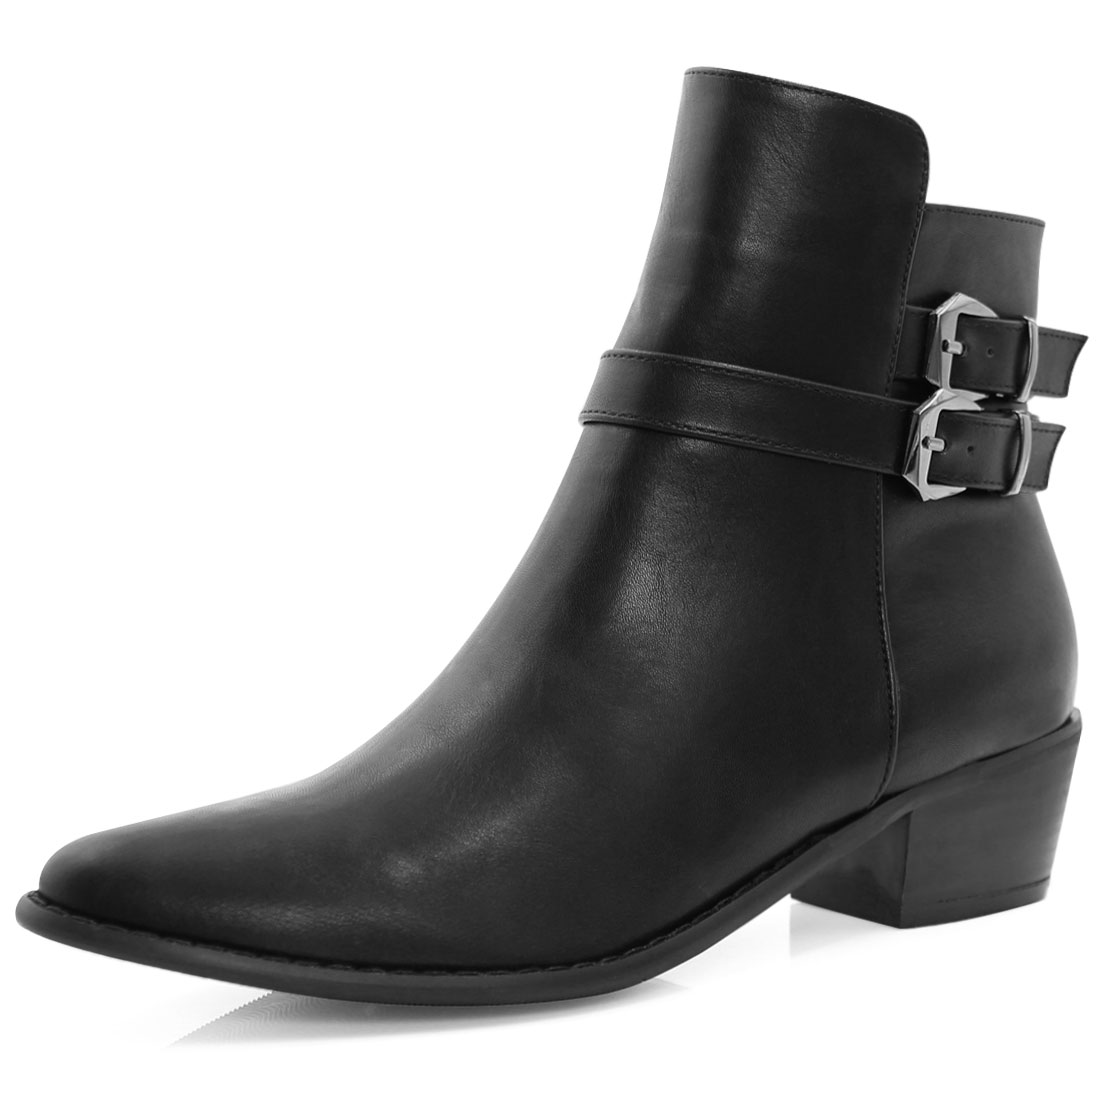 Women Pointed Toe Buckled Strap Zipper Ankle Boots Black US 10.5